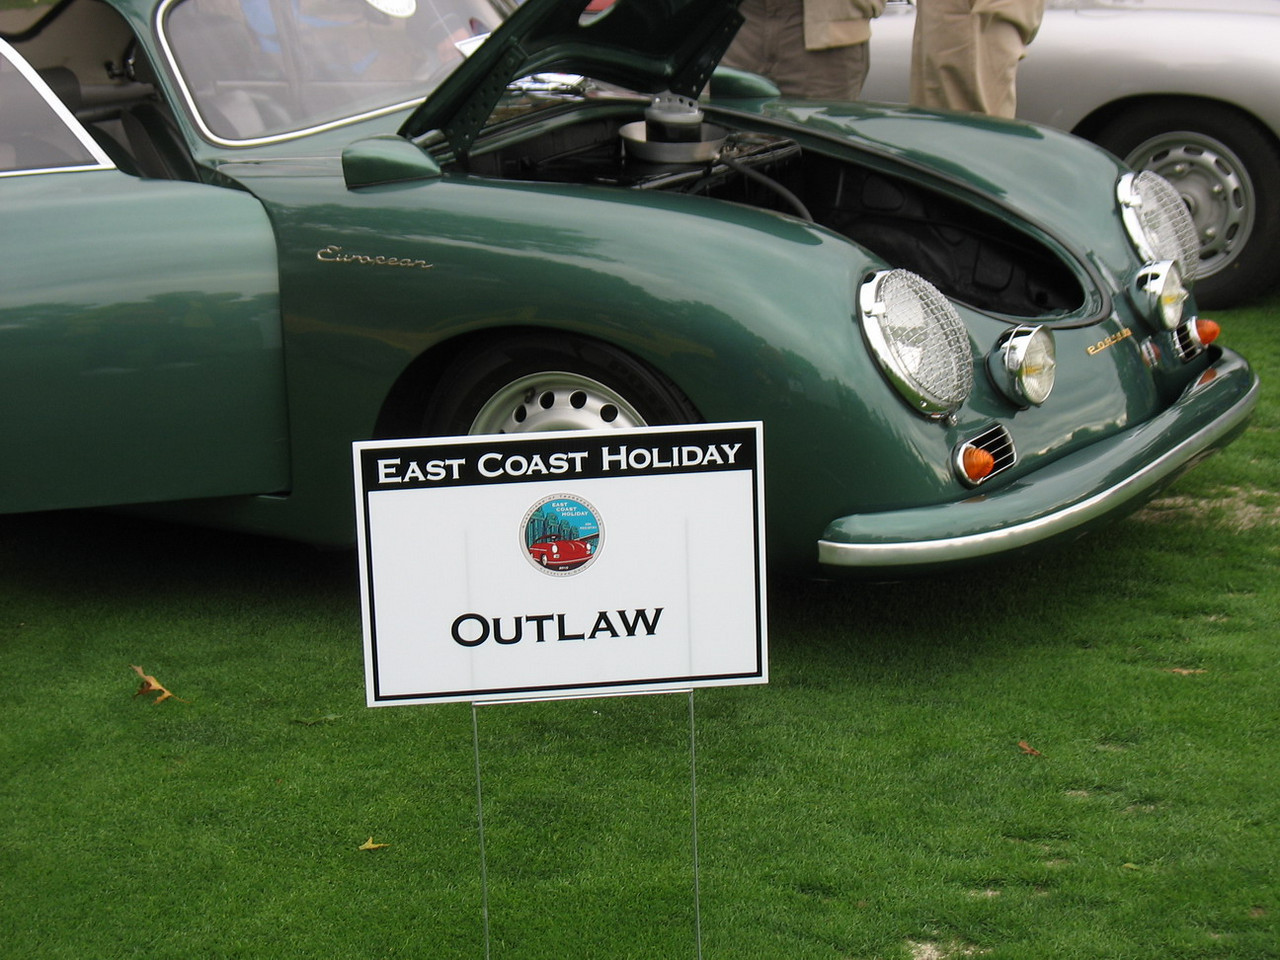 Then there are those cars that don't conform to Porsche specs for a variety of reasons - the OUTLAWS!